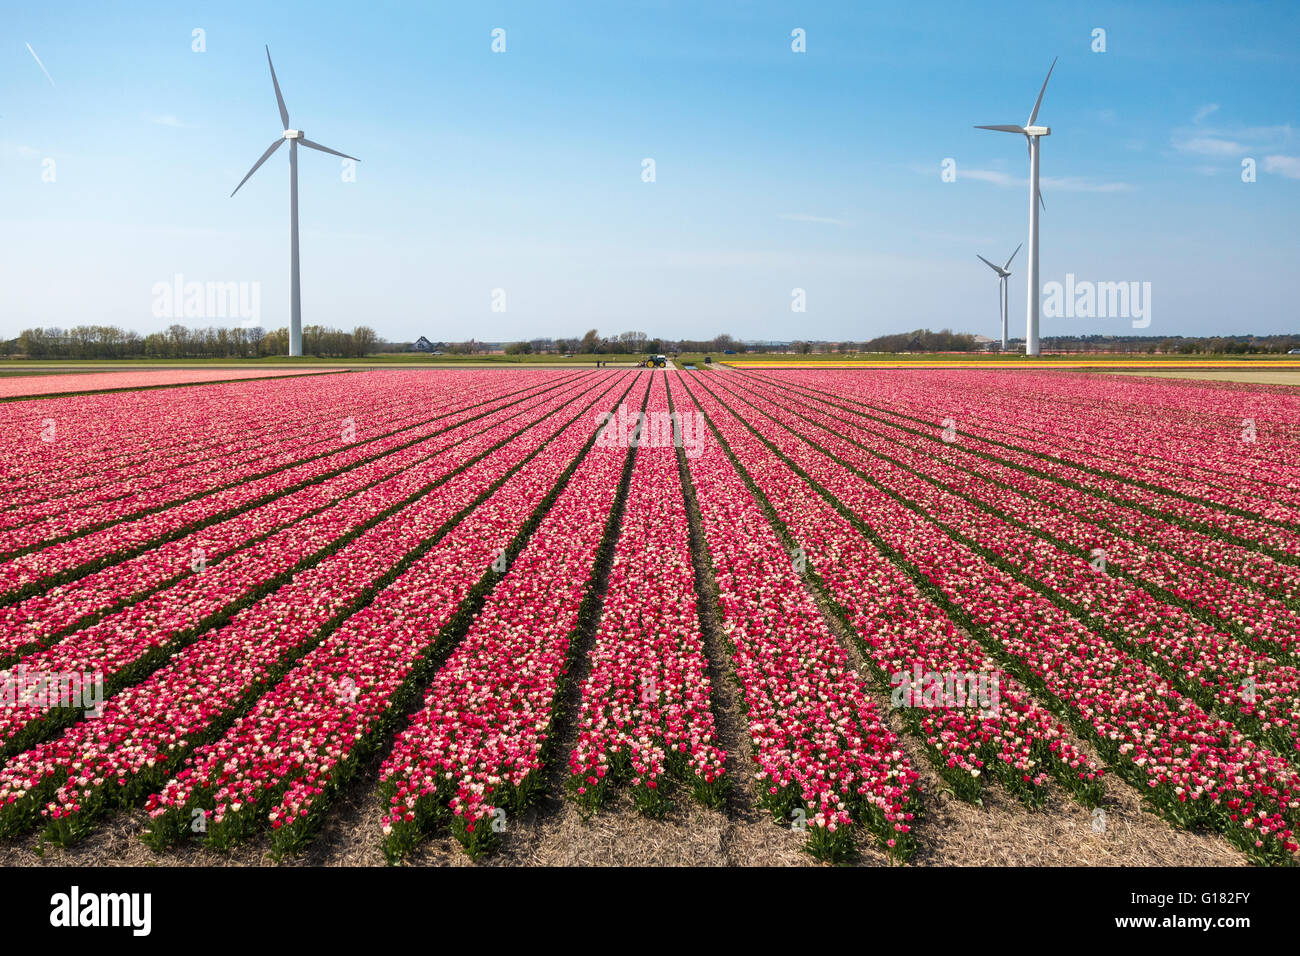 Tulips with wind turbines in The Netherlands. Tulip fields with mixed red and white tulips with three windmills. - Stock Image